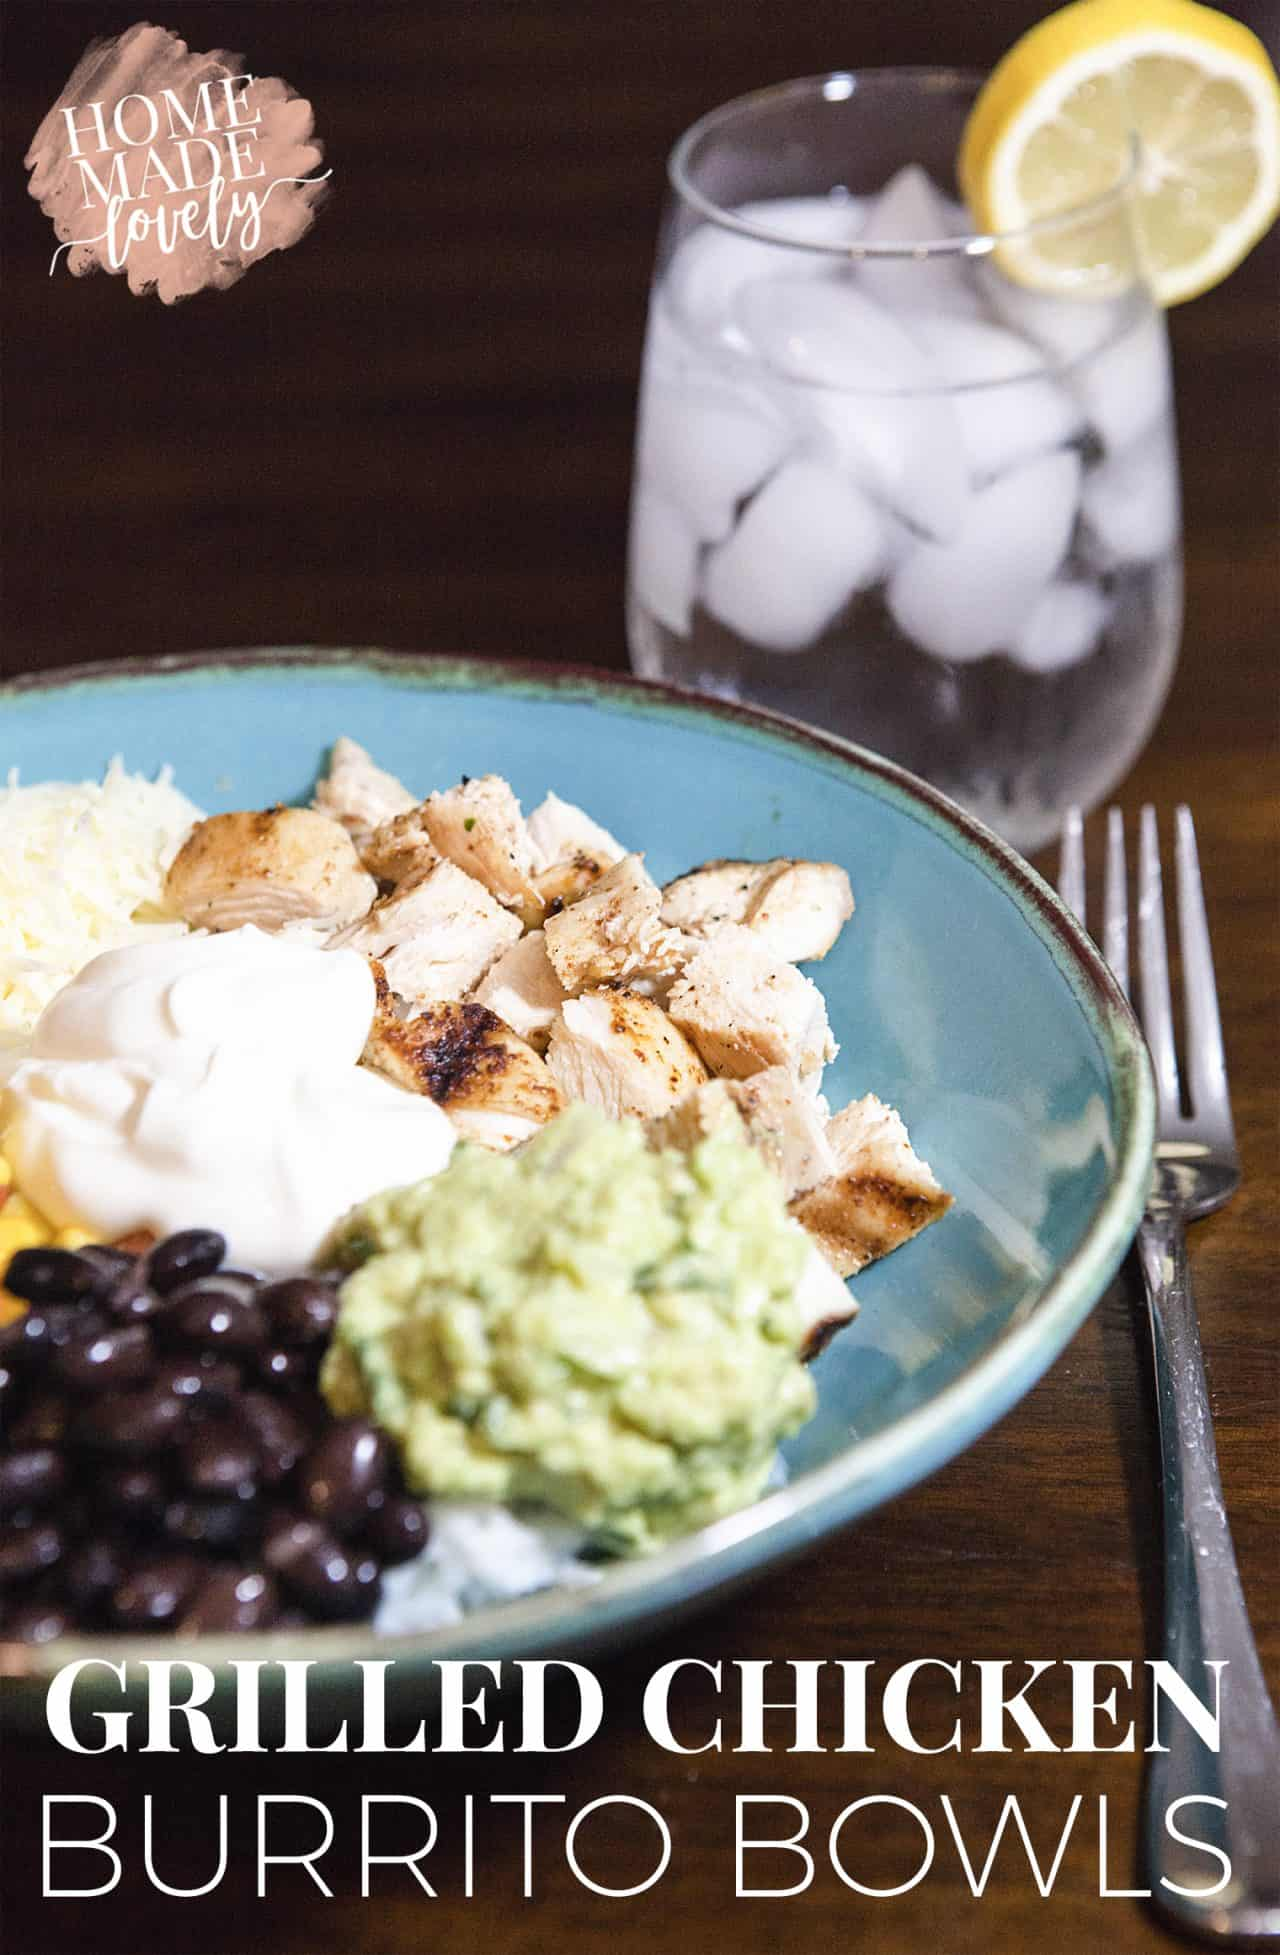 Make these grilled chicken burrito bowls with dairy or with non-dairy substitutes and enjoy a delish and fun lunch or dinner on the patio!